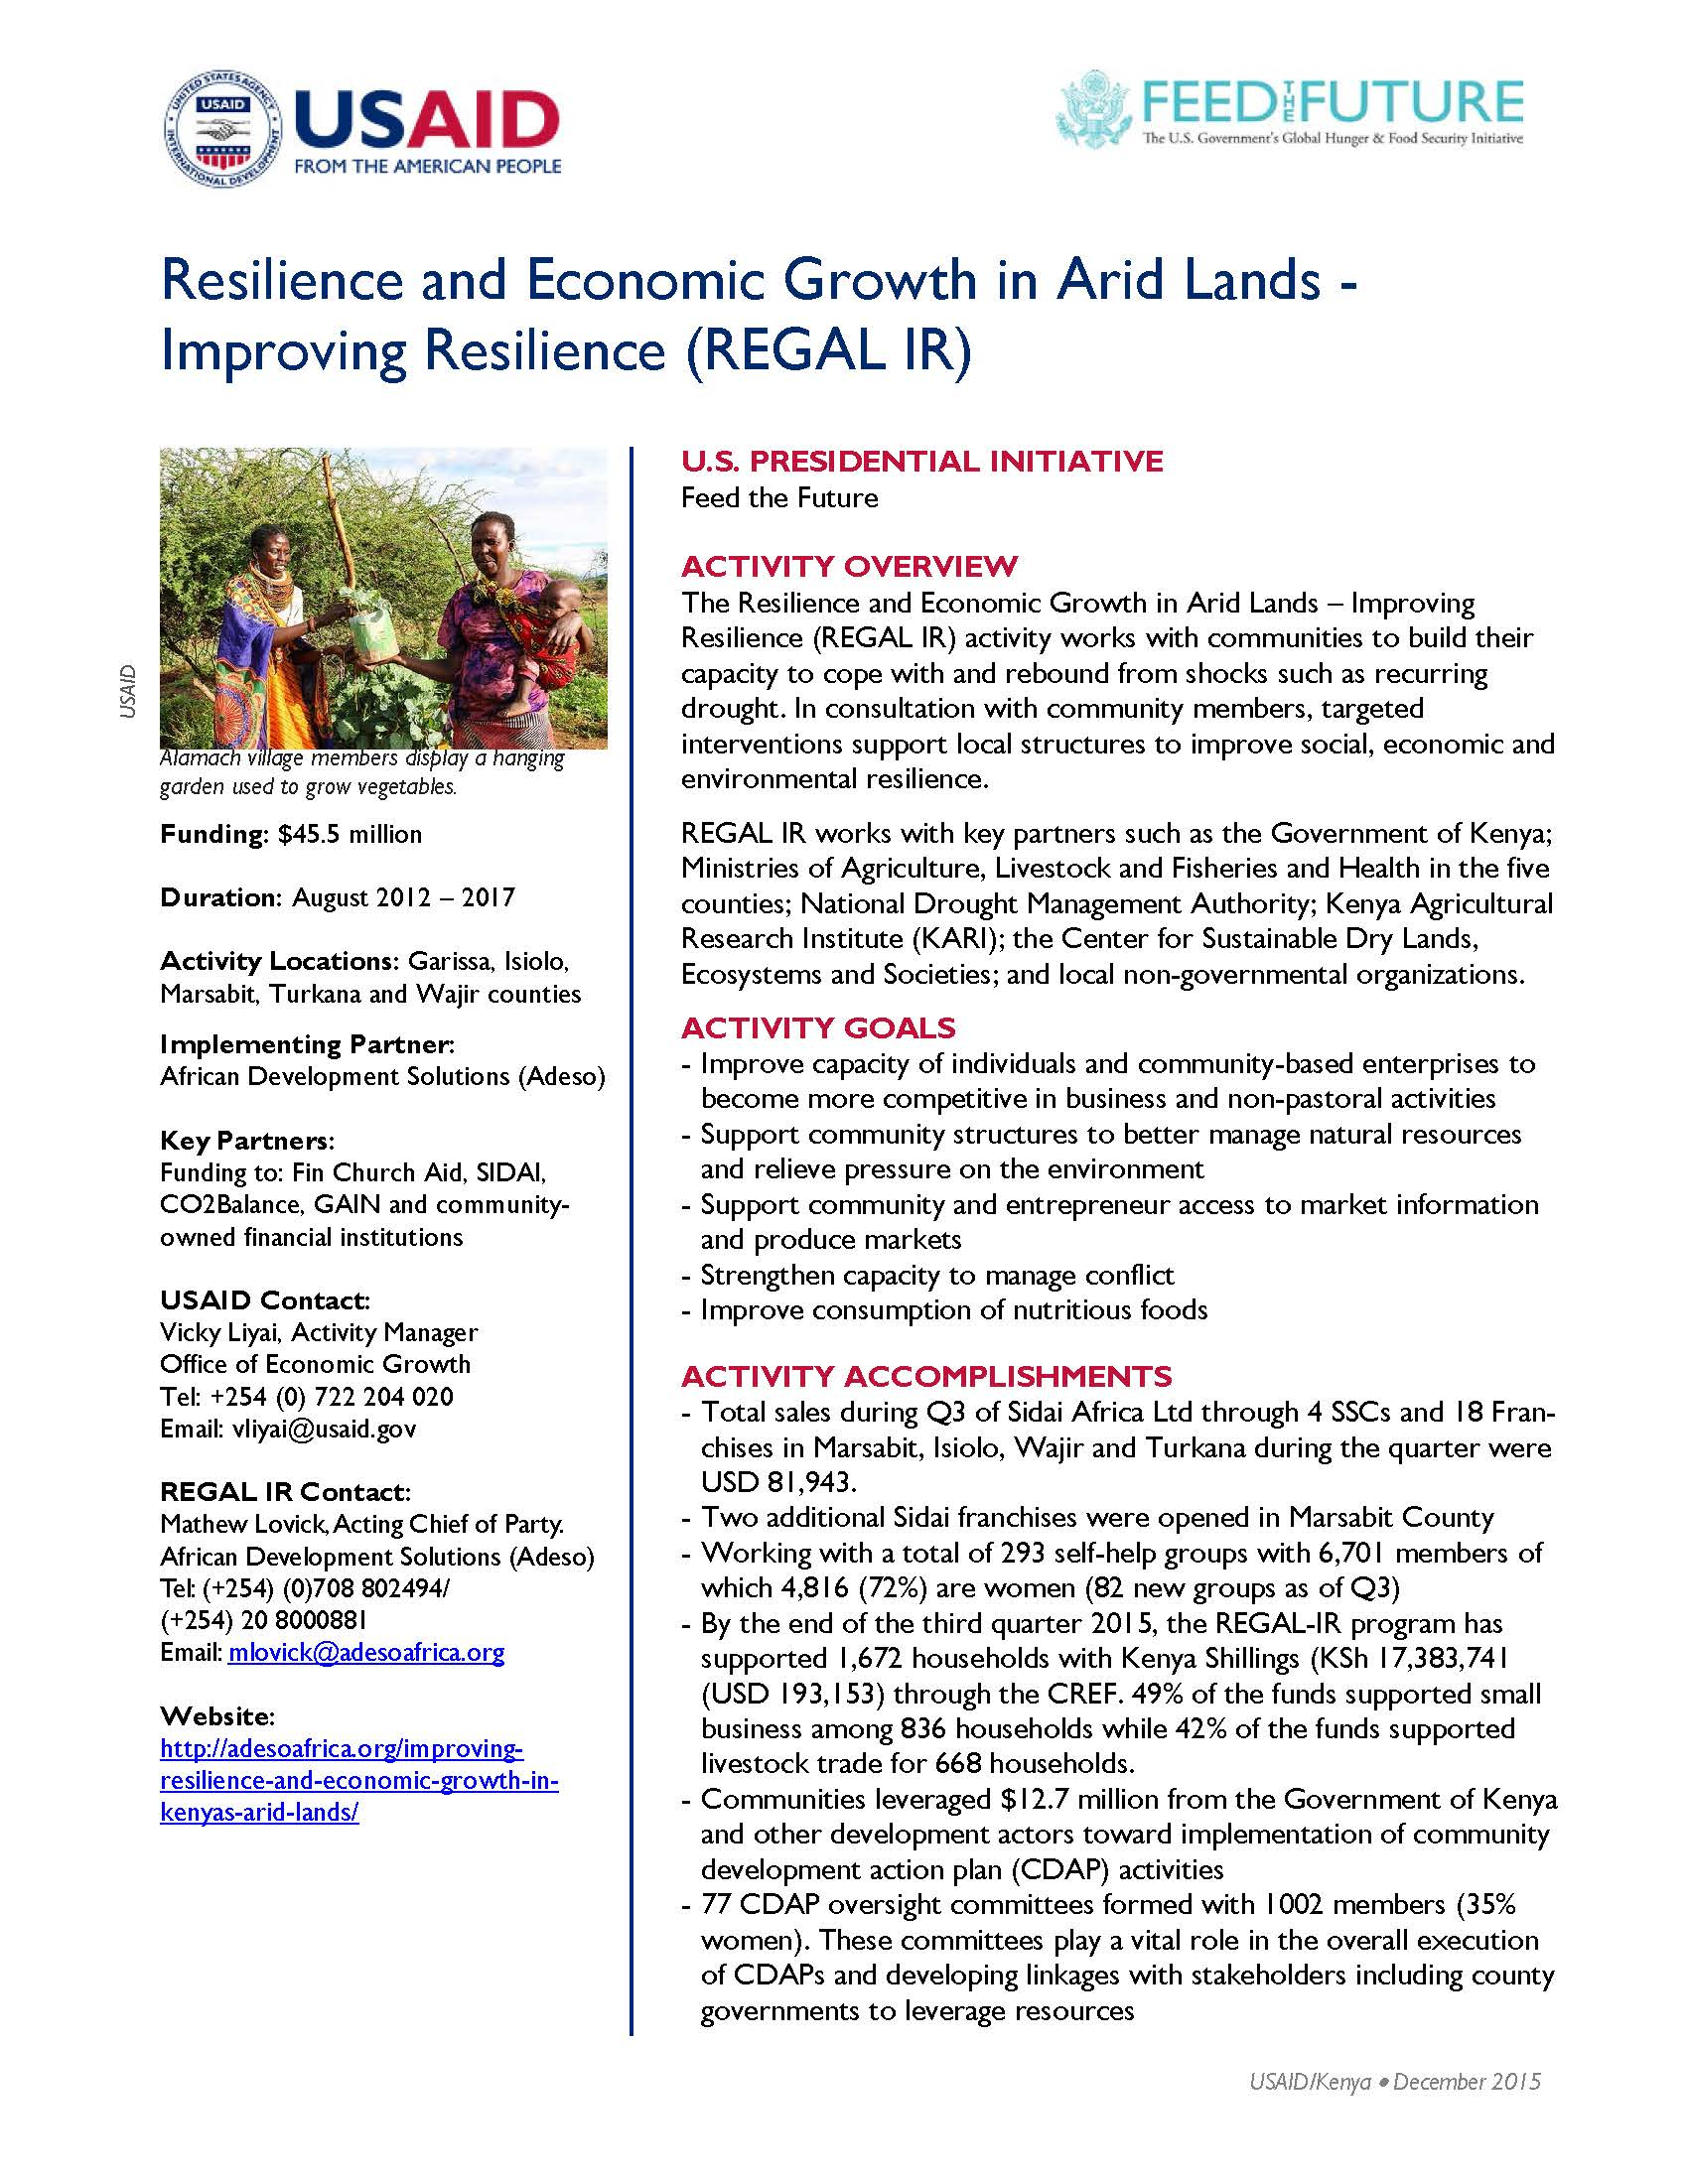 Resilience and Economic Growth in Arid Lands - Improving Resilience (REGAL IR)